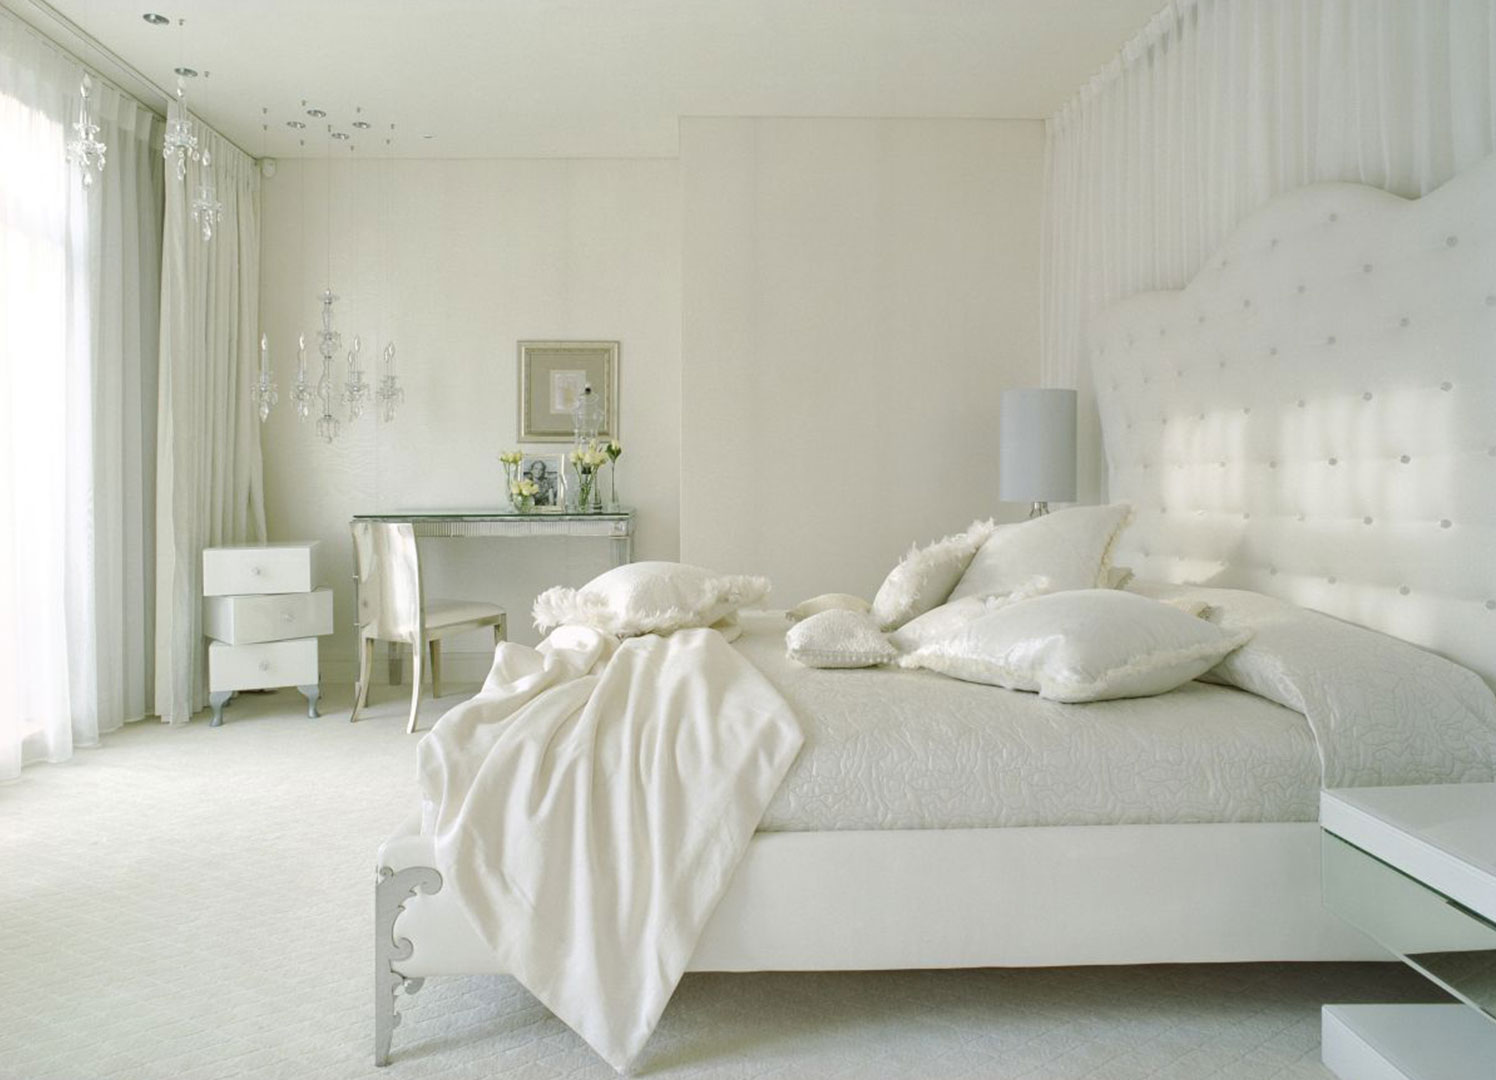 šta boja vaše spavaće sobe govori o vama my cup of tea 16456 | white bedroom design ideas collection homesthetics 19